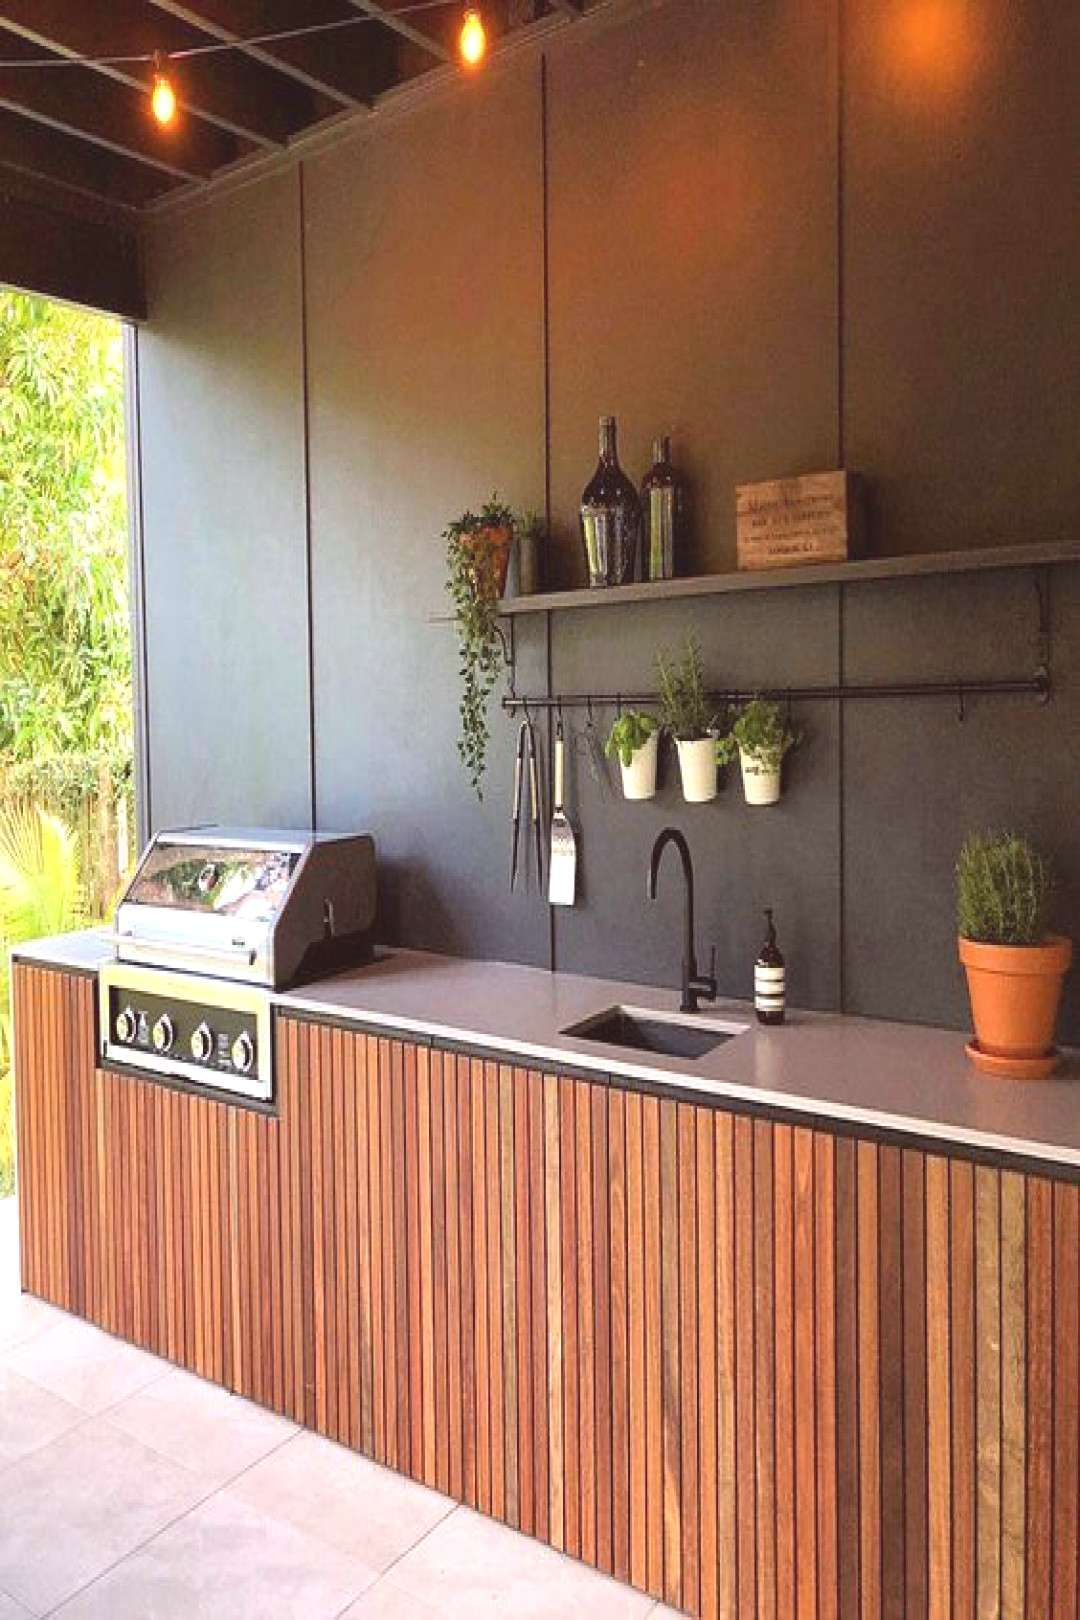 Outdoor Kitchens can be such a great addition to your homeYou can find Outdoor kitchens and more on our websiteOutdoor Kitchens can be such a great addition to your home